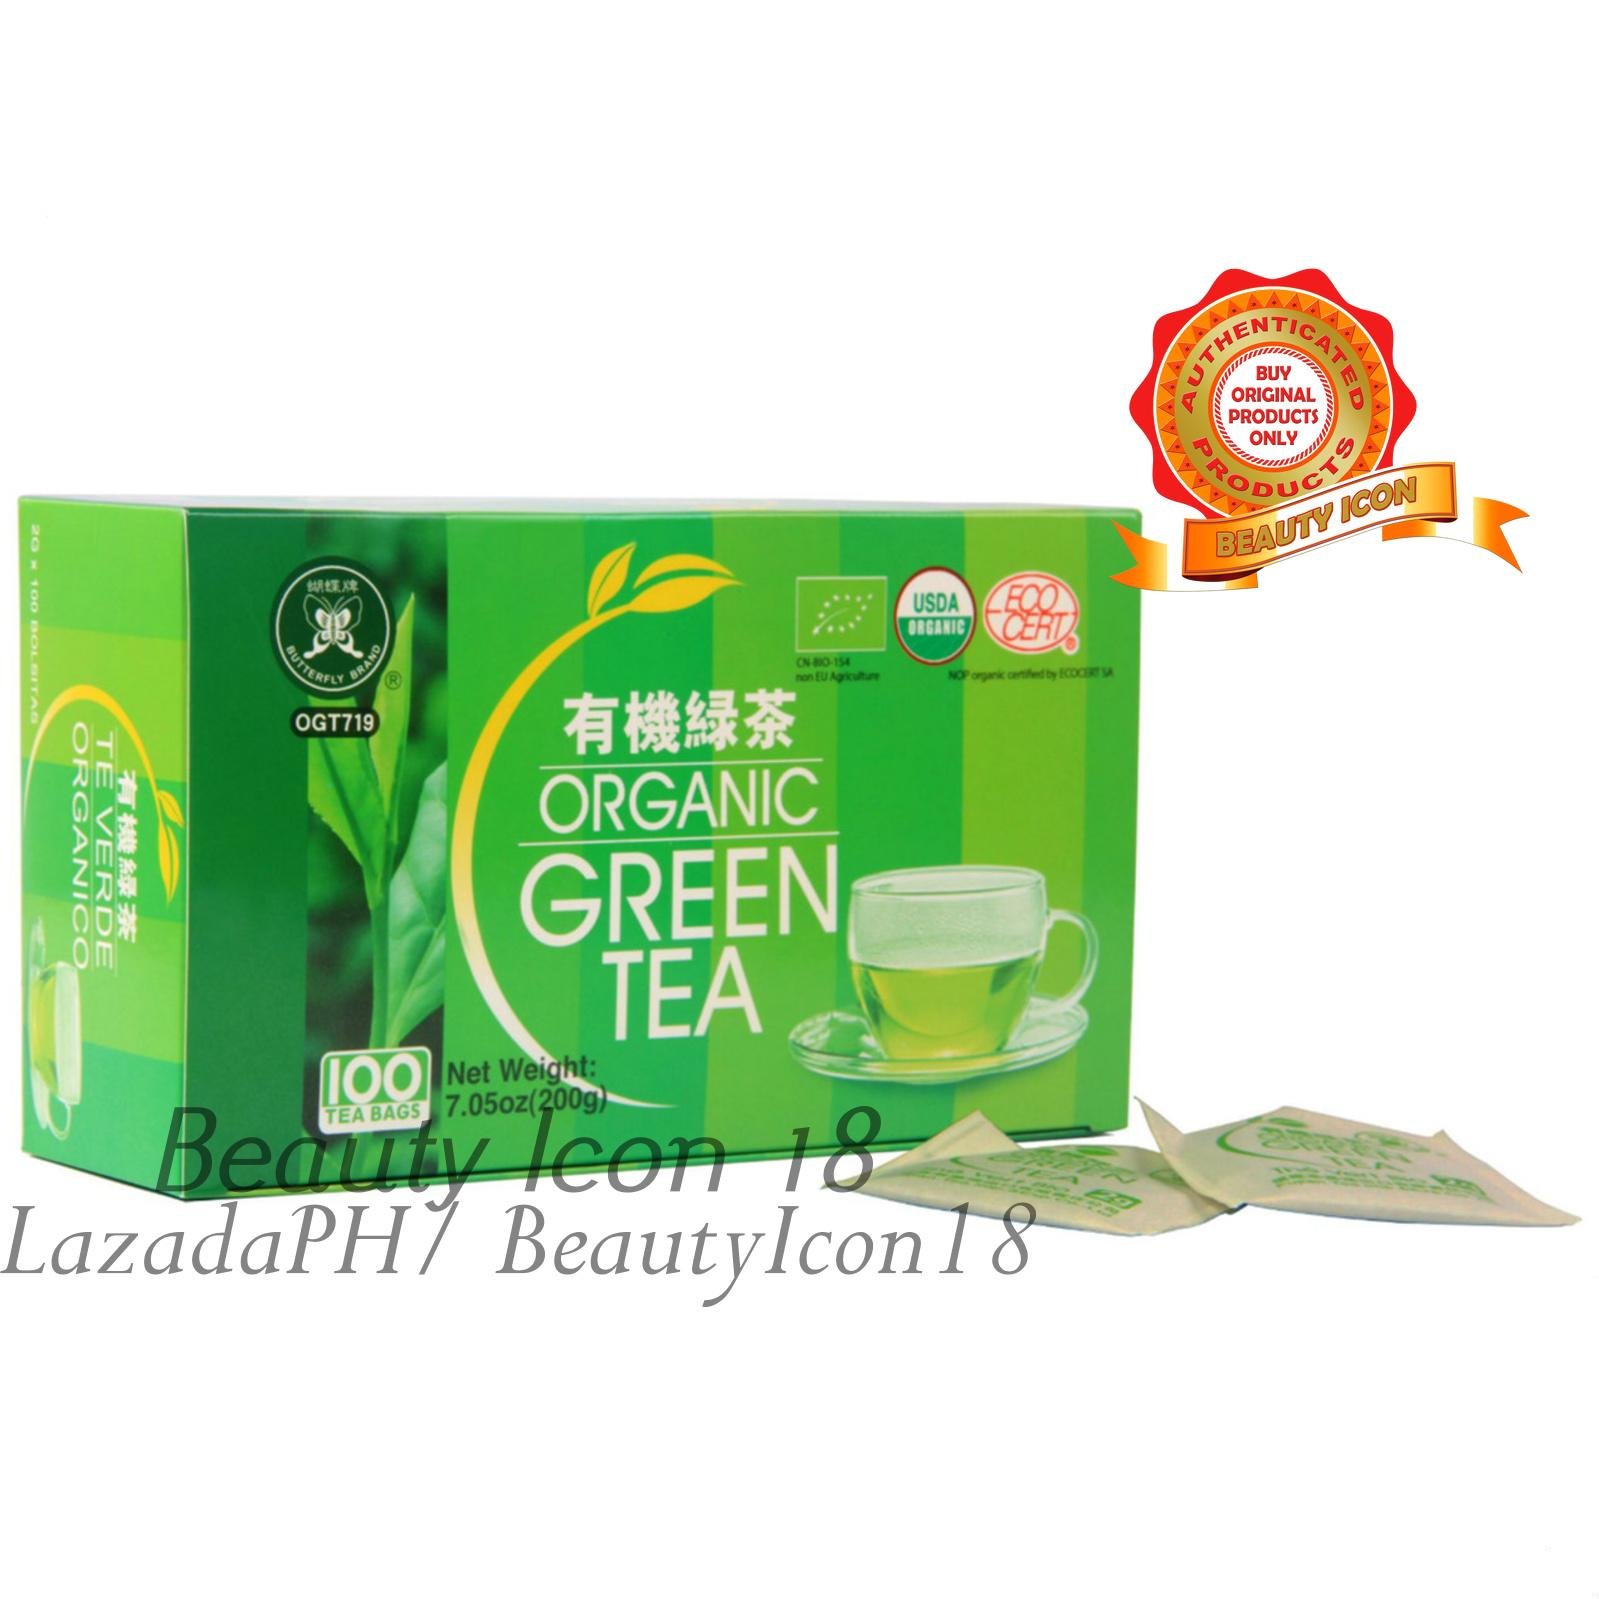 What is Greenfield The secrets of the success of the tea brand